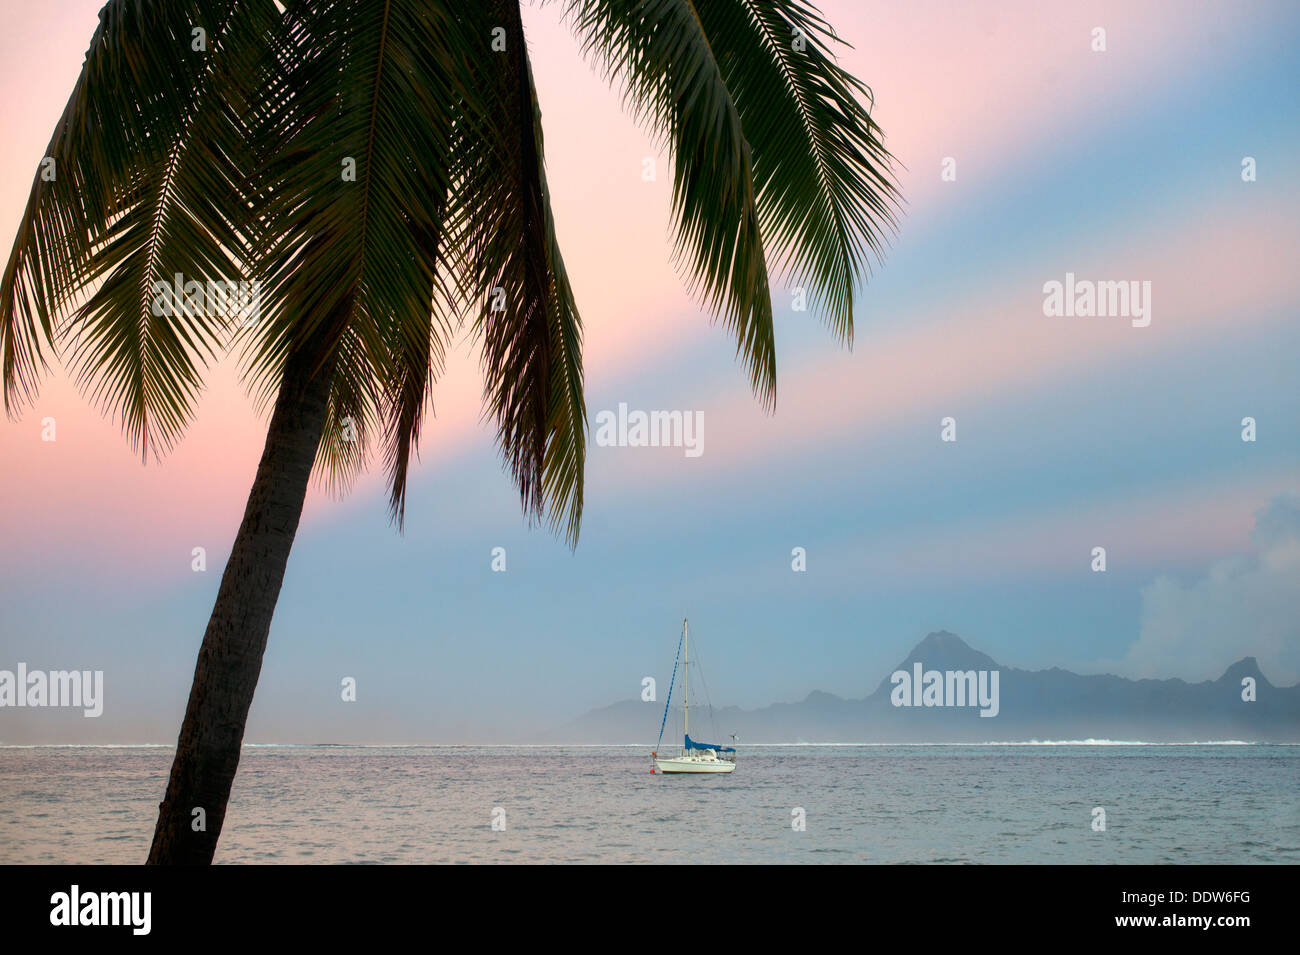 Palm tree sailboat, sunrise and the Island of Moorea. Tahiti. French Polynesia - Stock Image